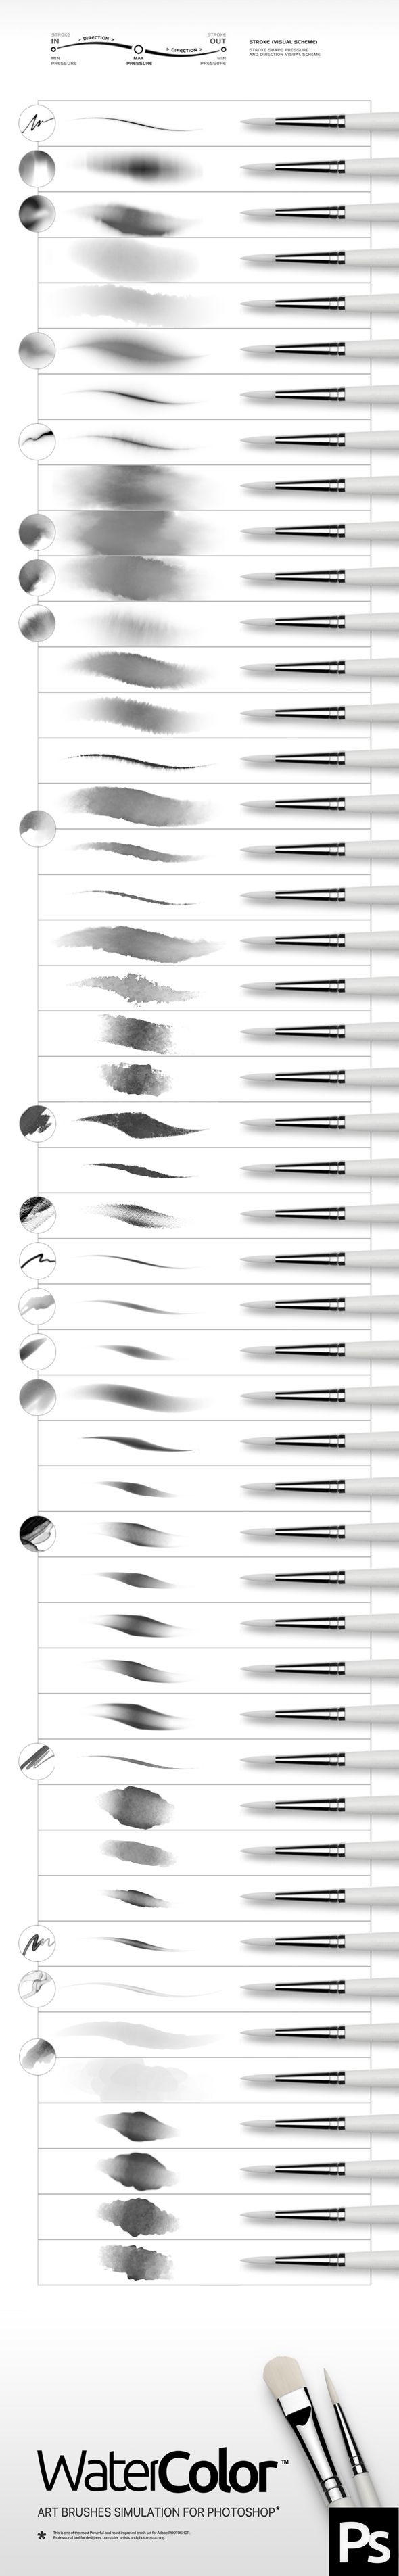 Watercolor Brushes - Artistic Brushes